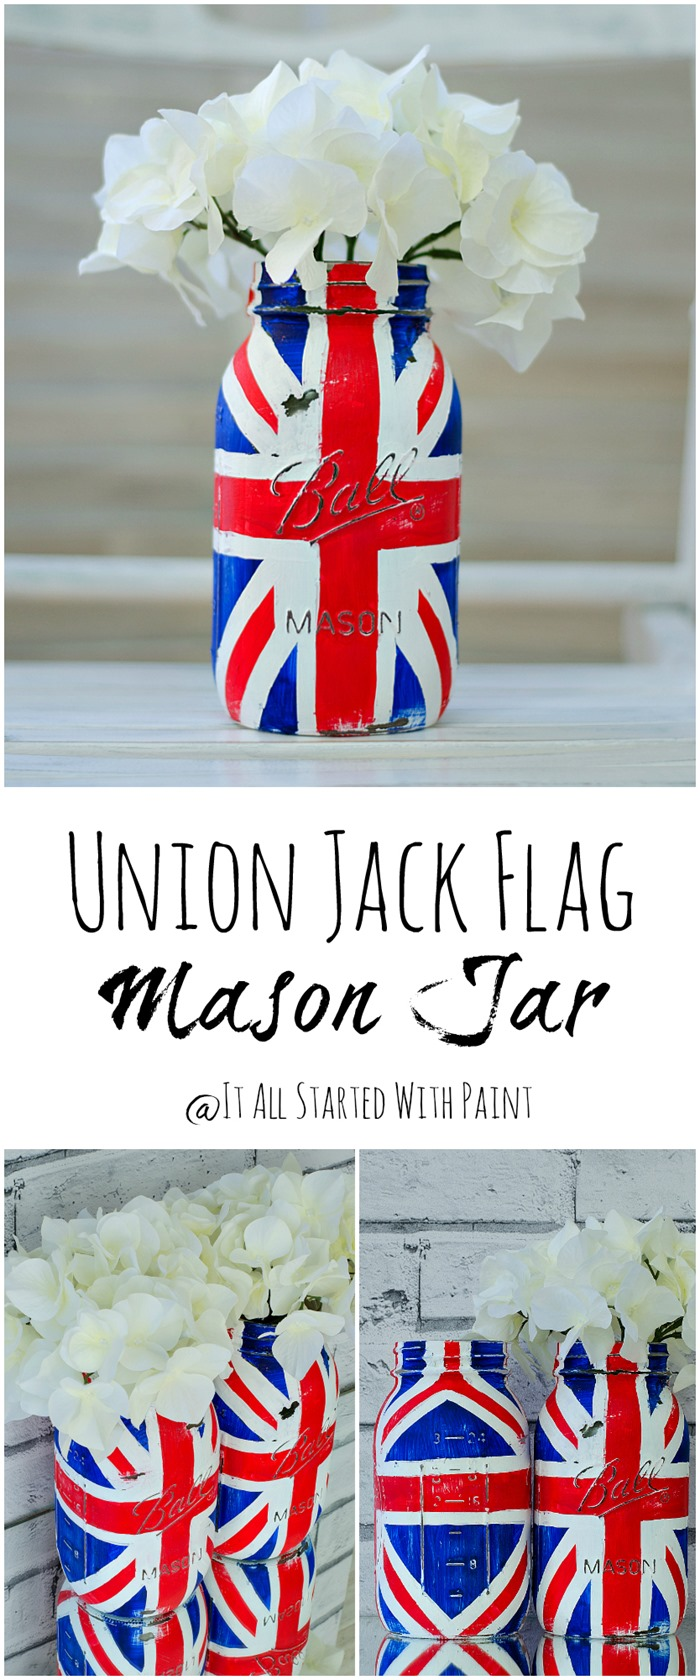 Union-Jack-Flag-Mason-Jar-Painted-Distressed-How-To-Make